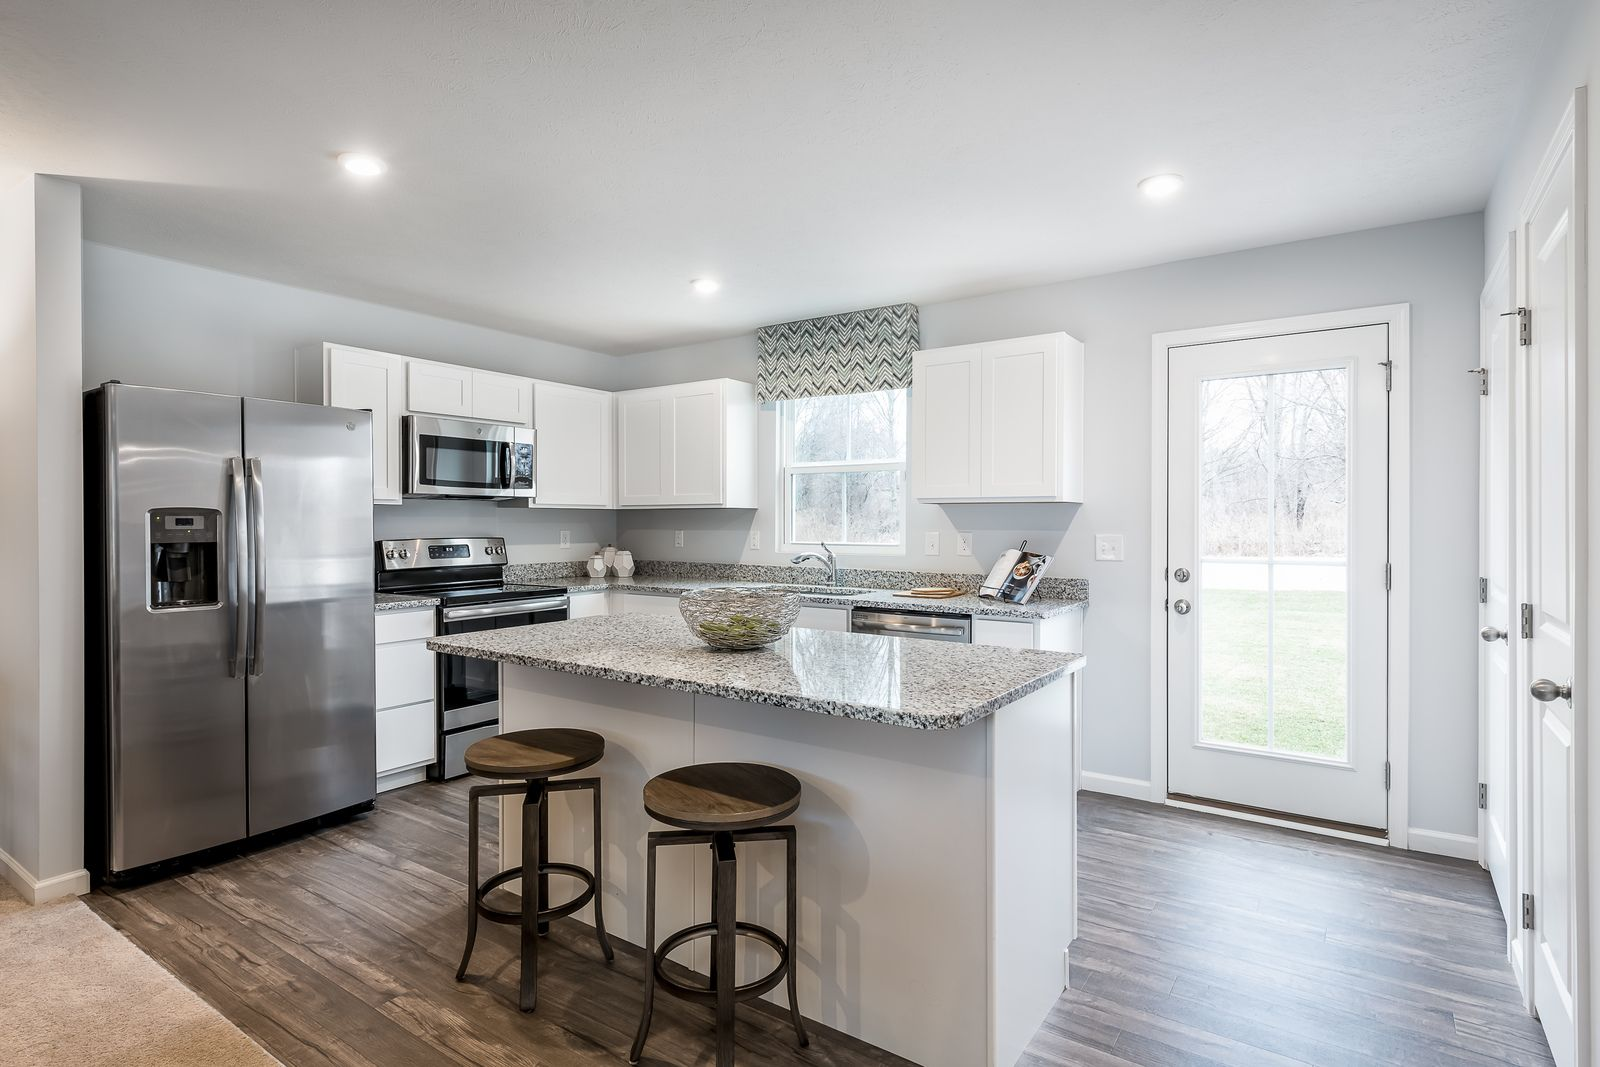 Own a New Home Near Fishers at Oakmont!:Own a new home, with all appliances included, near Fishers & Hamilton Town Center, from the mid $200s.Click here to schedule your visit today!